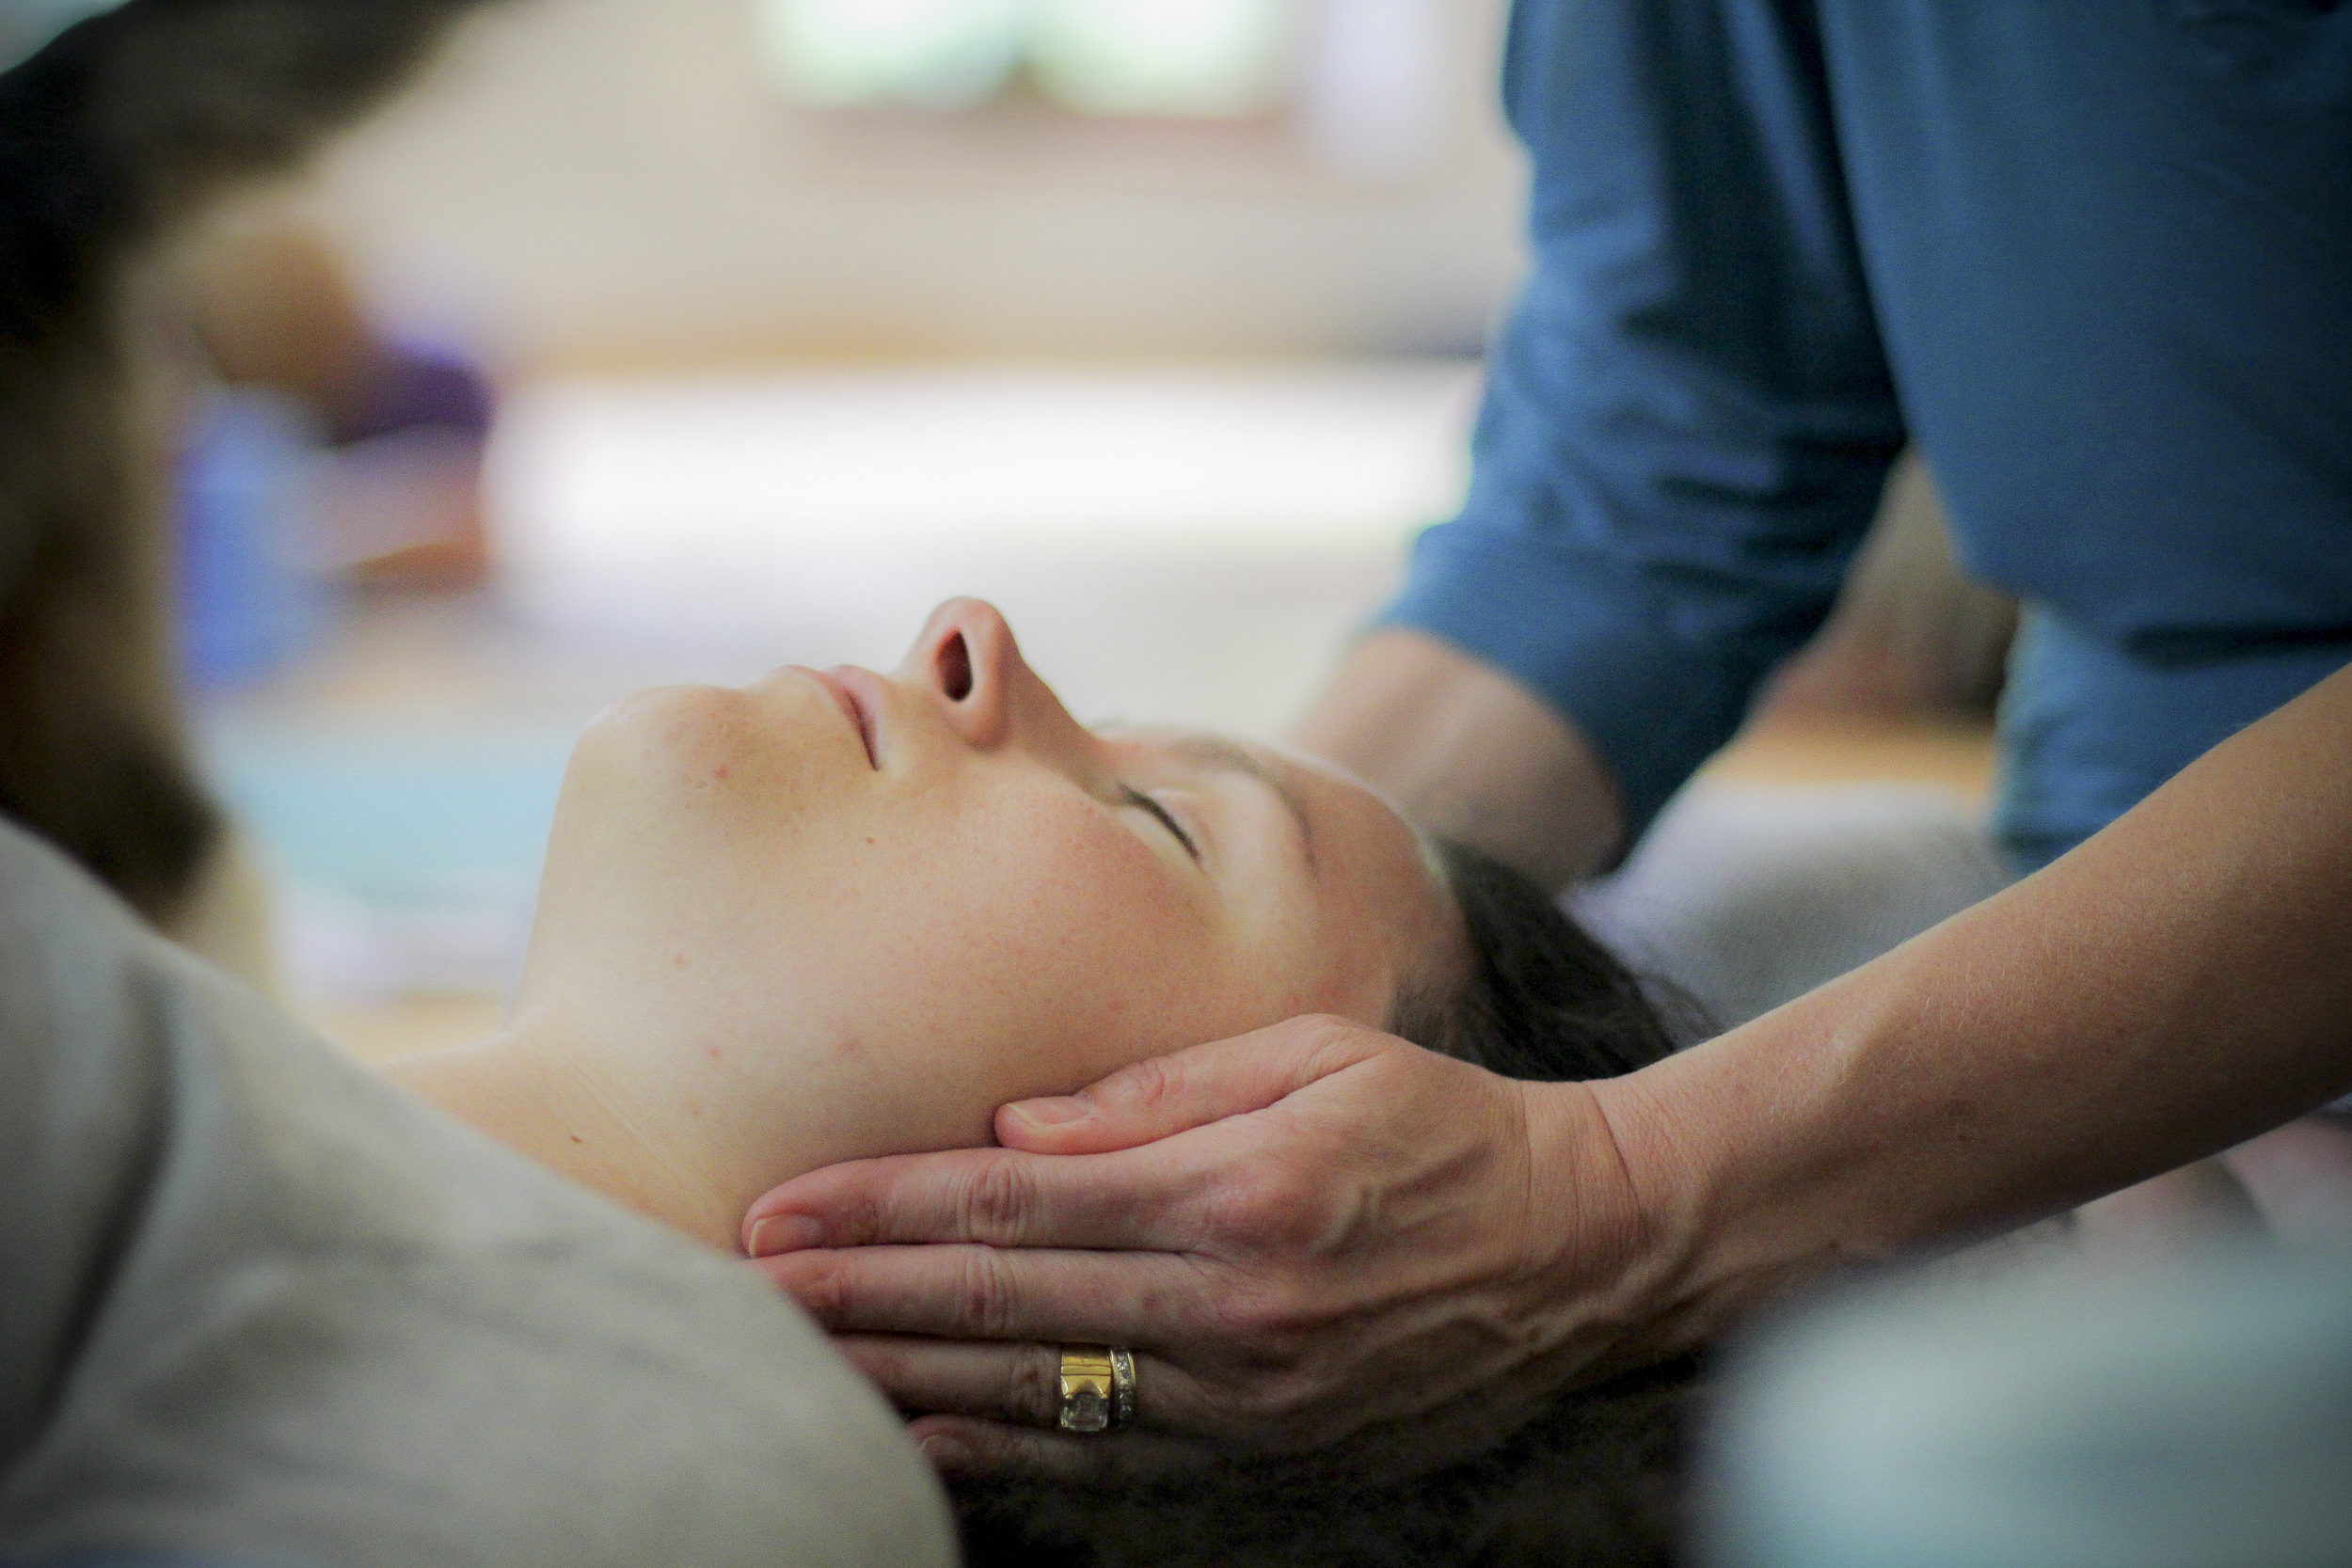 Yoga chikitsa,therapeutic touch aspect of yoga integrates the ayurvedic principles of marma therapy and provides students with the gift of presence and acceptance.